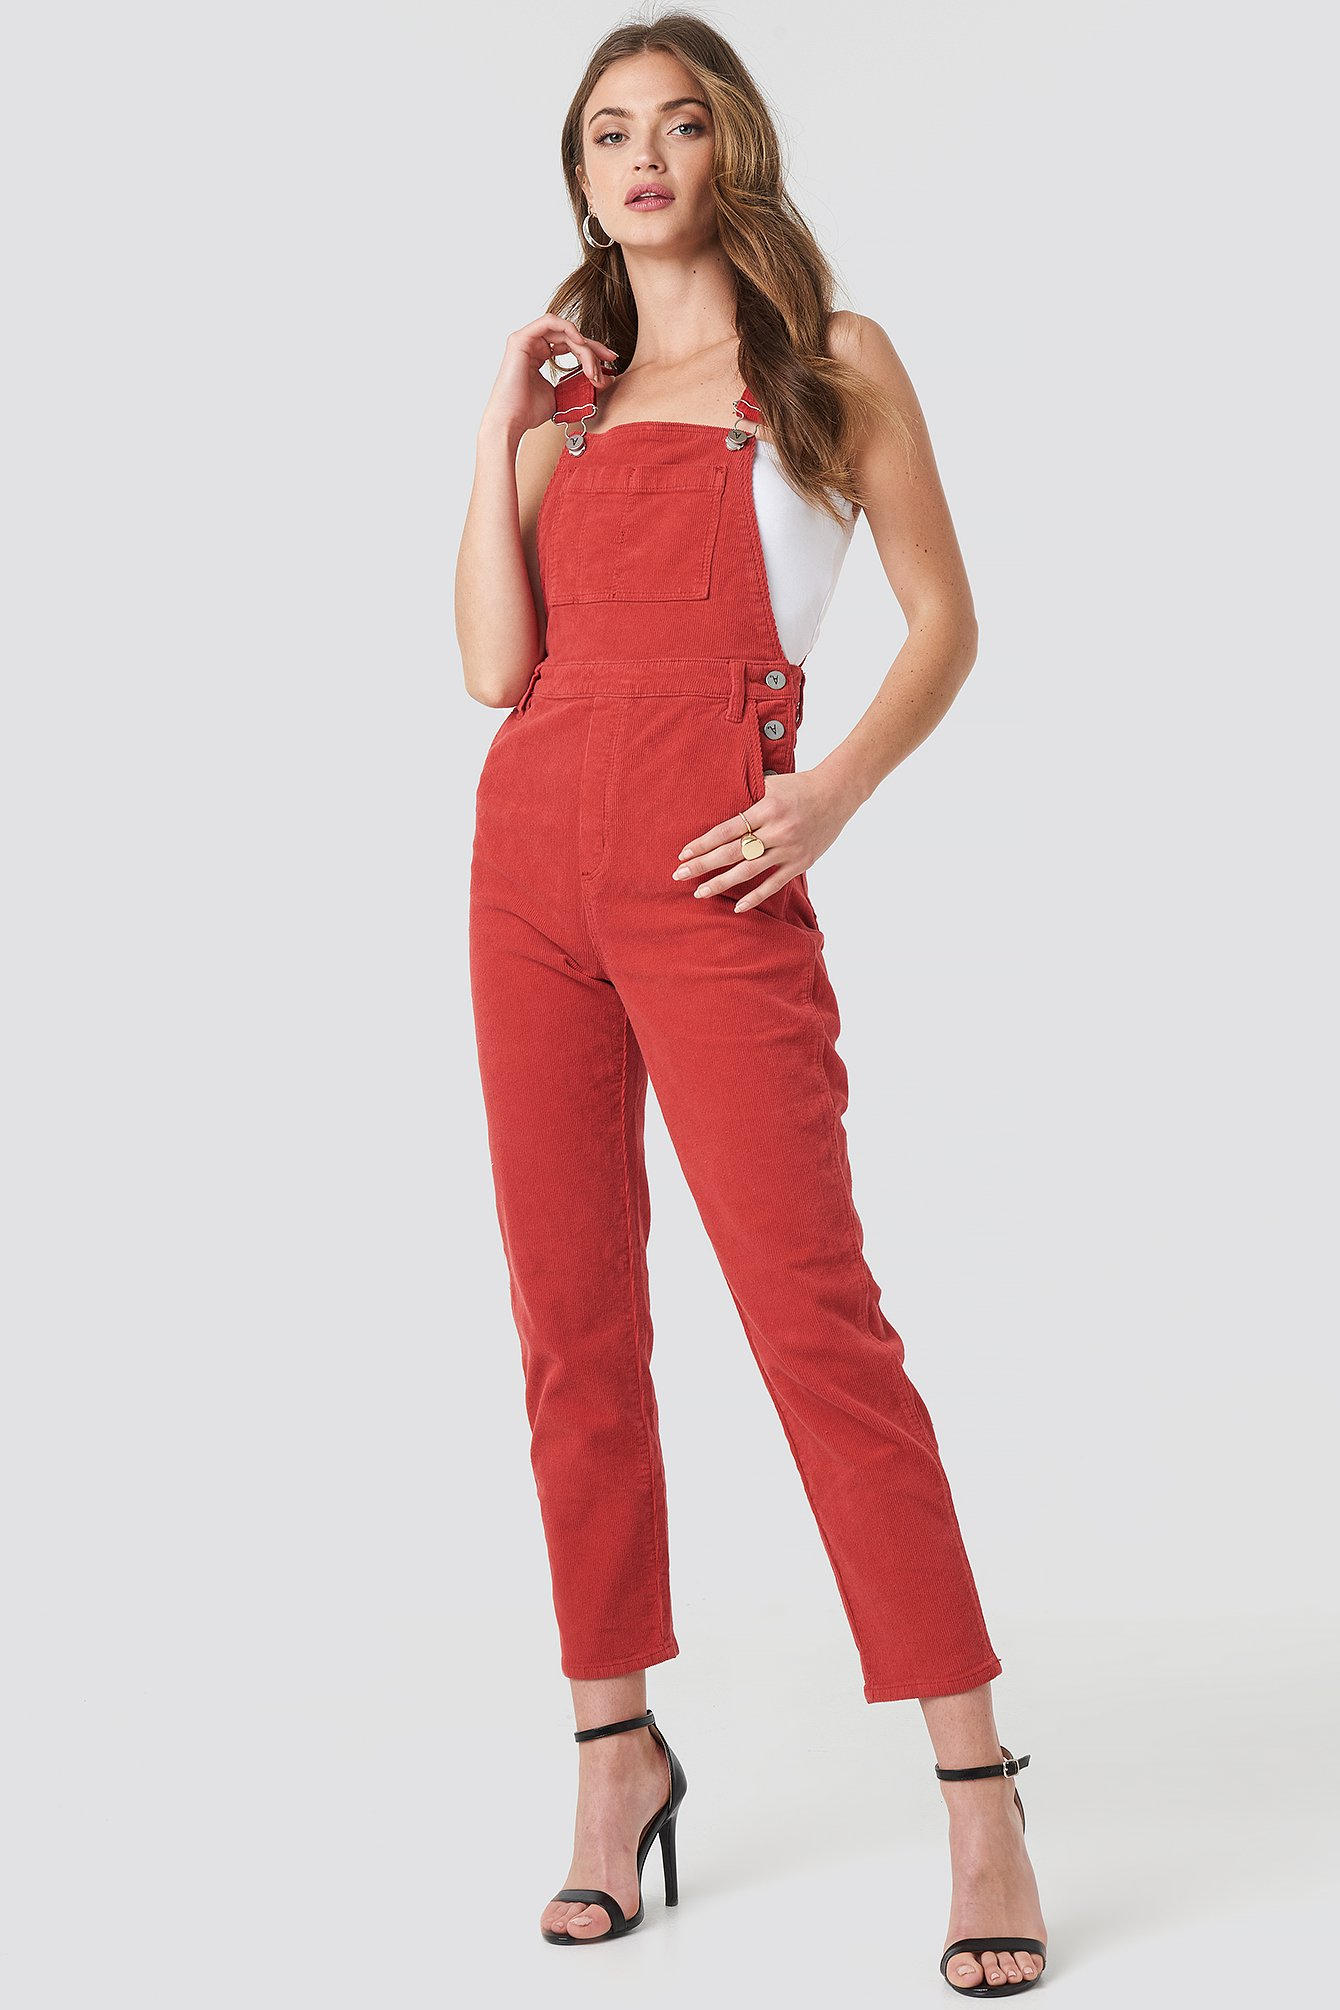 abrand -  A 94 Slim Overall - Red